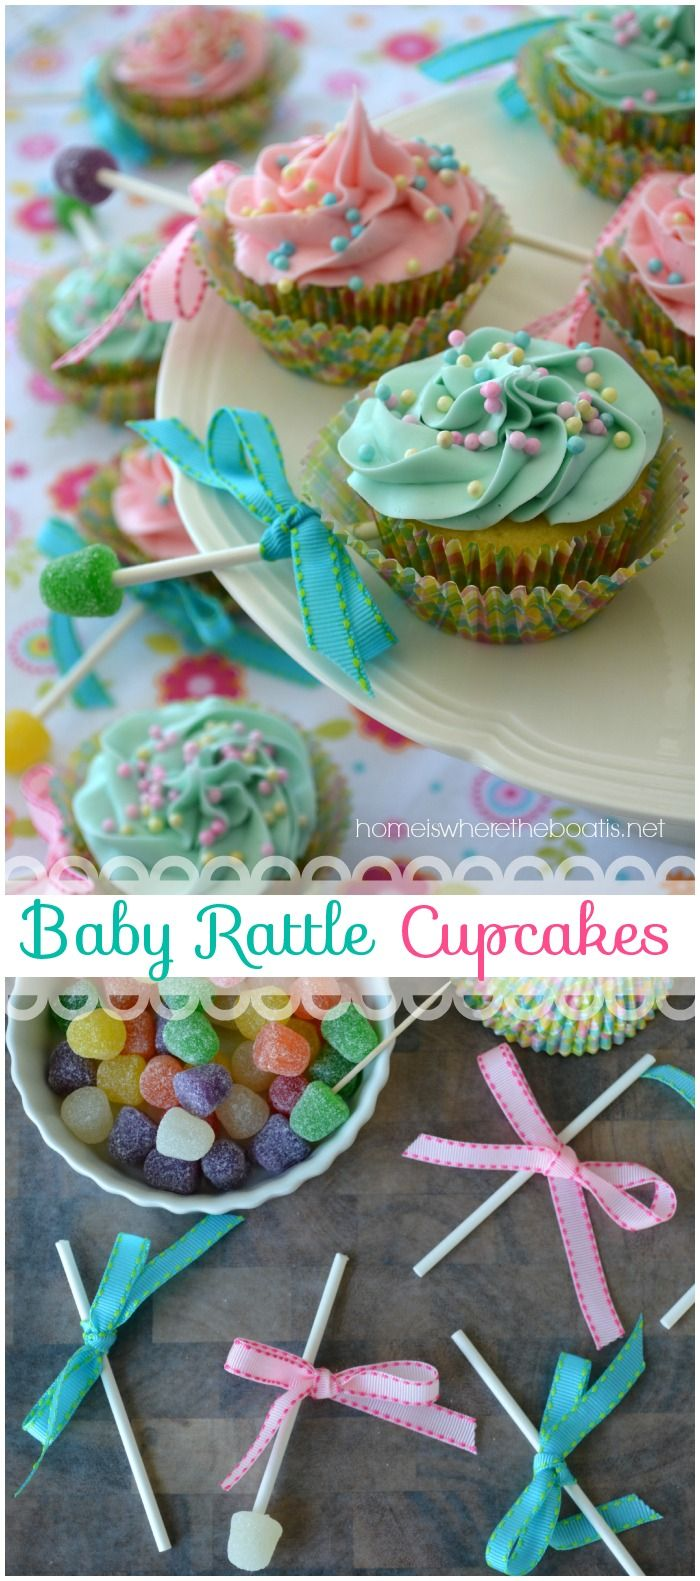 Baby Rattle Cupcakes, an easy and sweet ending for a baby shower!  #babyshowerideas #cupcakes